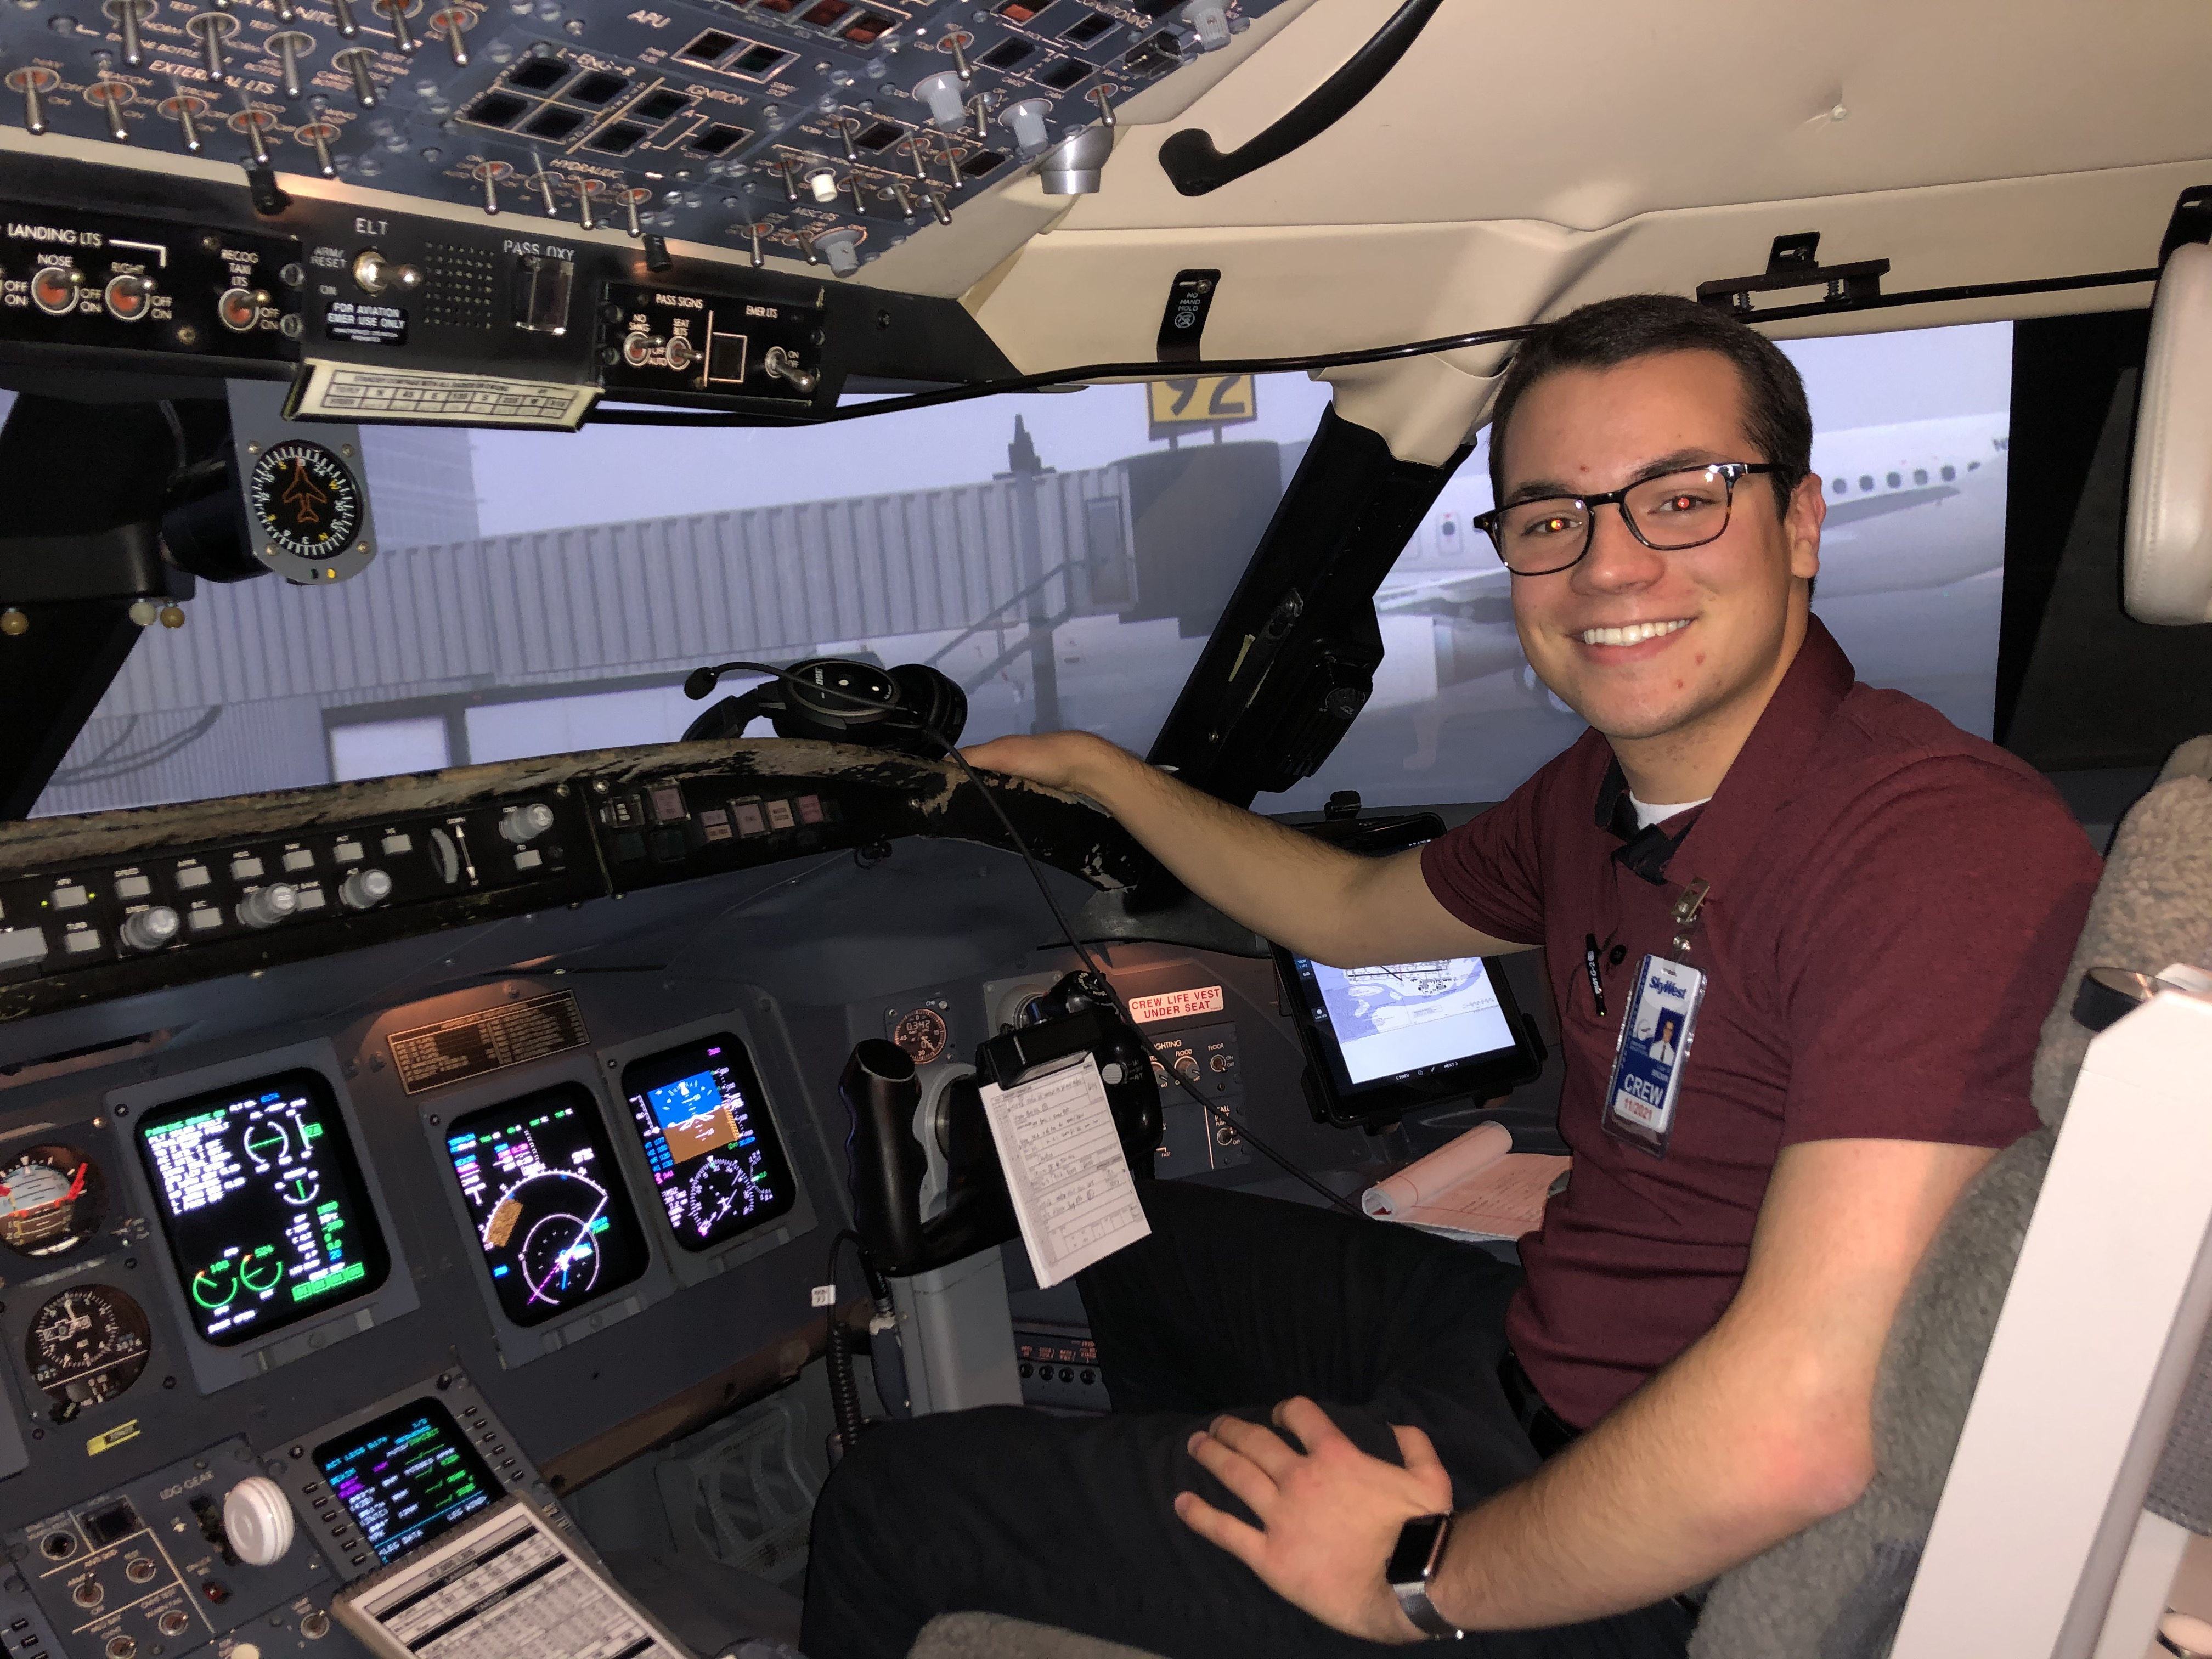 WMU Aviation Flight Science Alumni Logan Brown